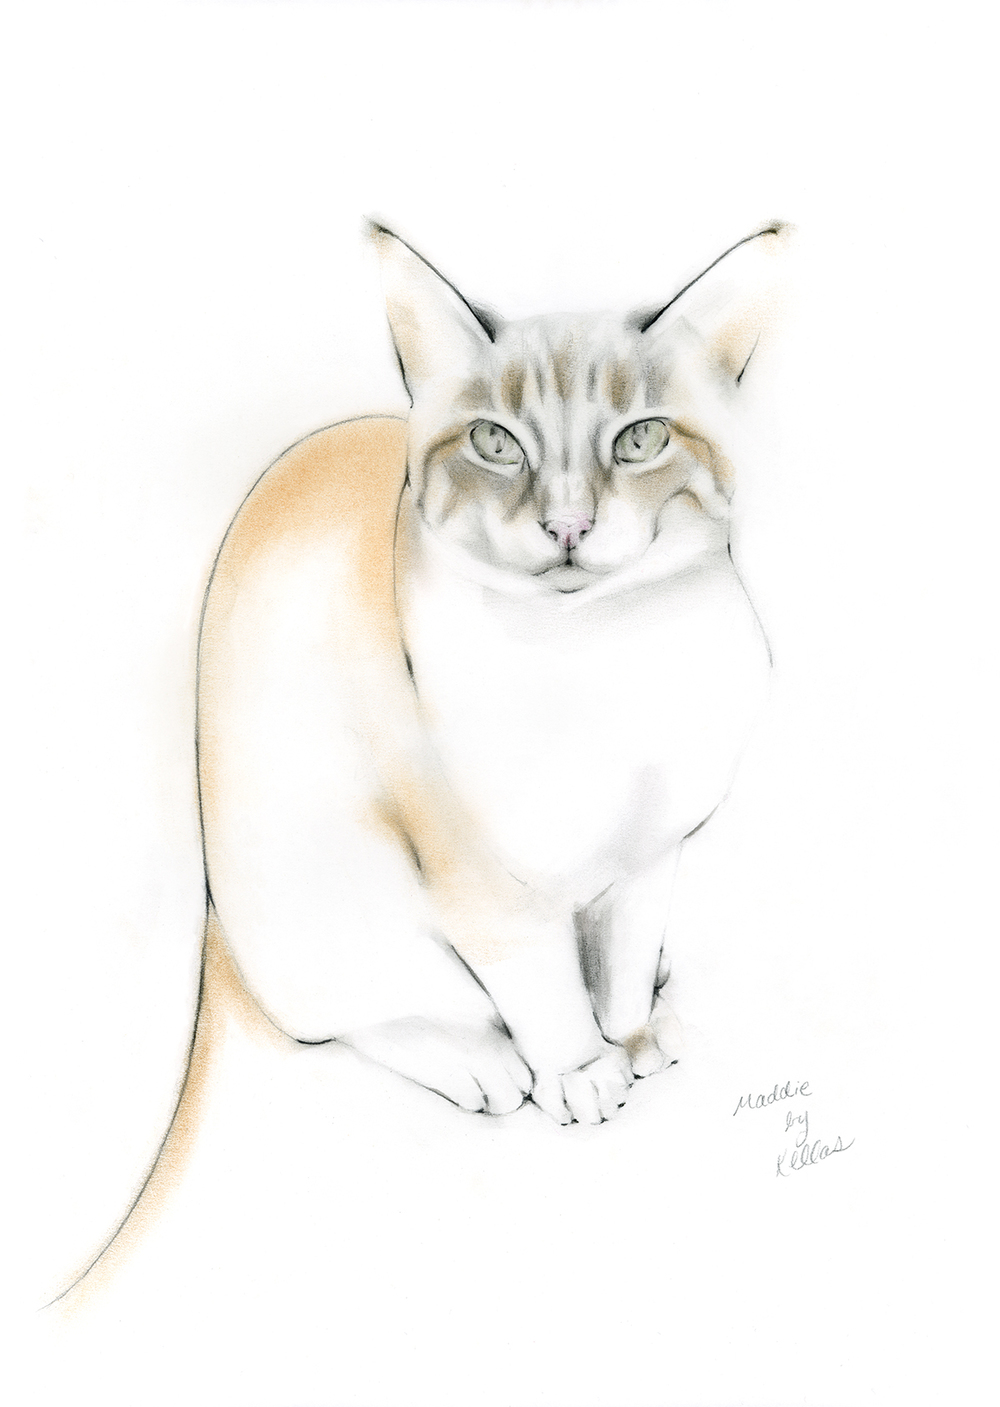 Maddie, a commissioned cat portrait.